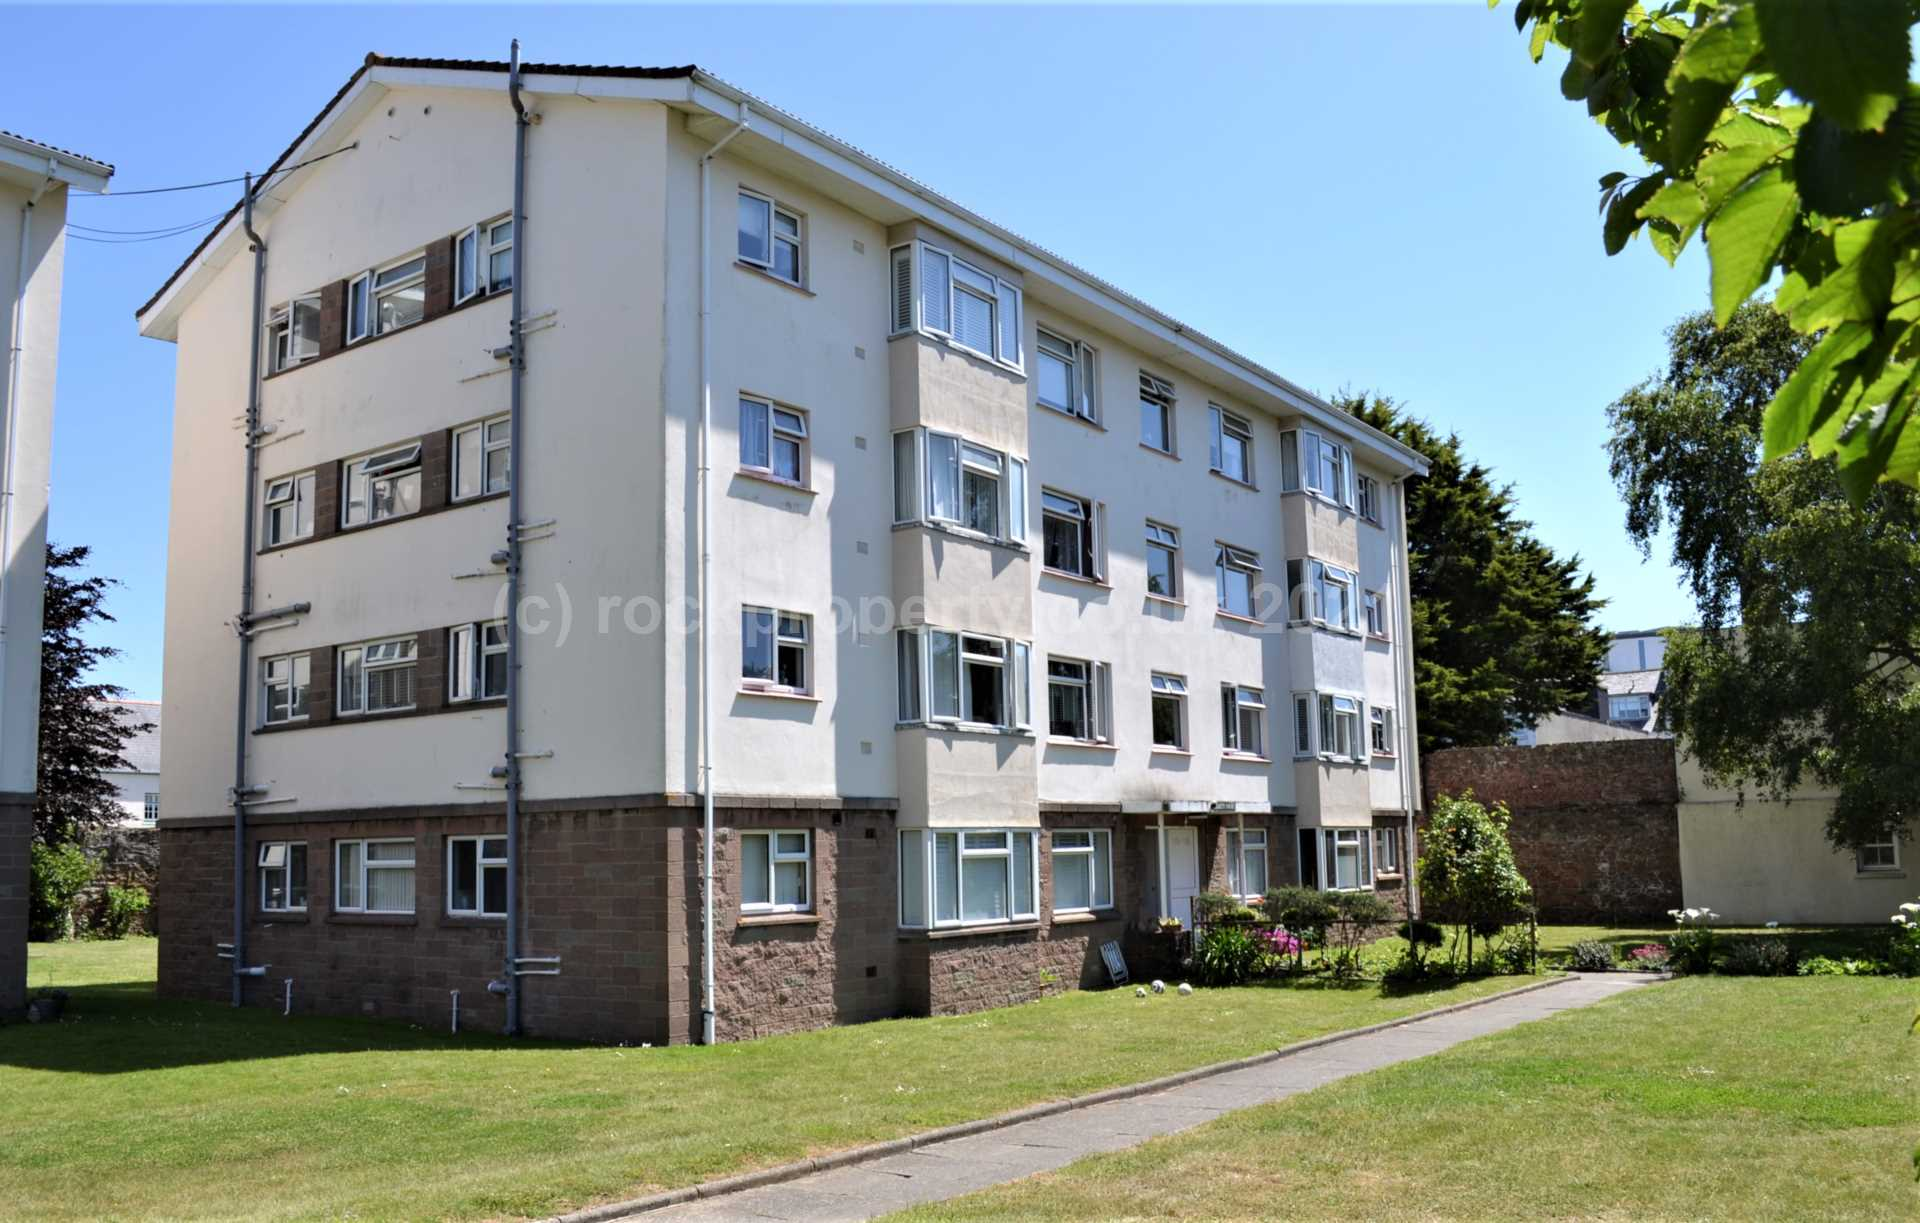 Rockproperty Ltd - 1 Bedroom Apartment, IMMACULATE 1 BED WITH GARAGE, Havre Des Pas, St Helier